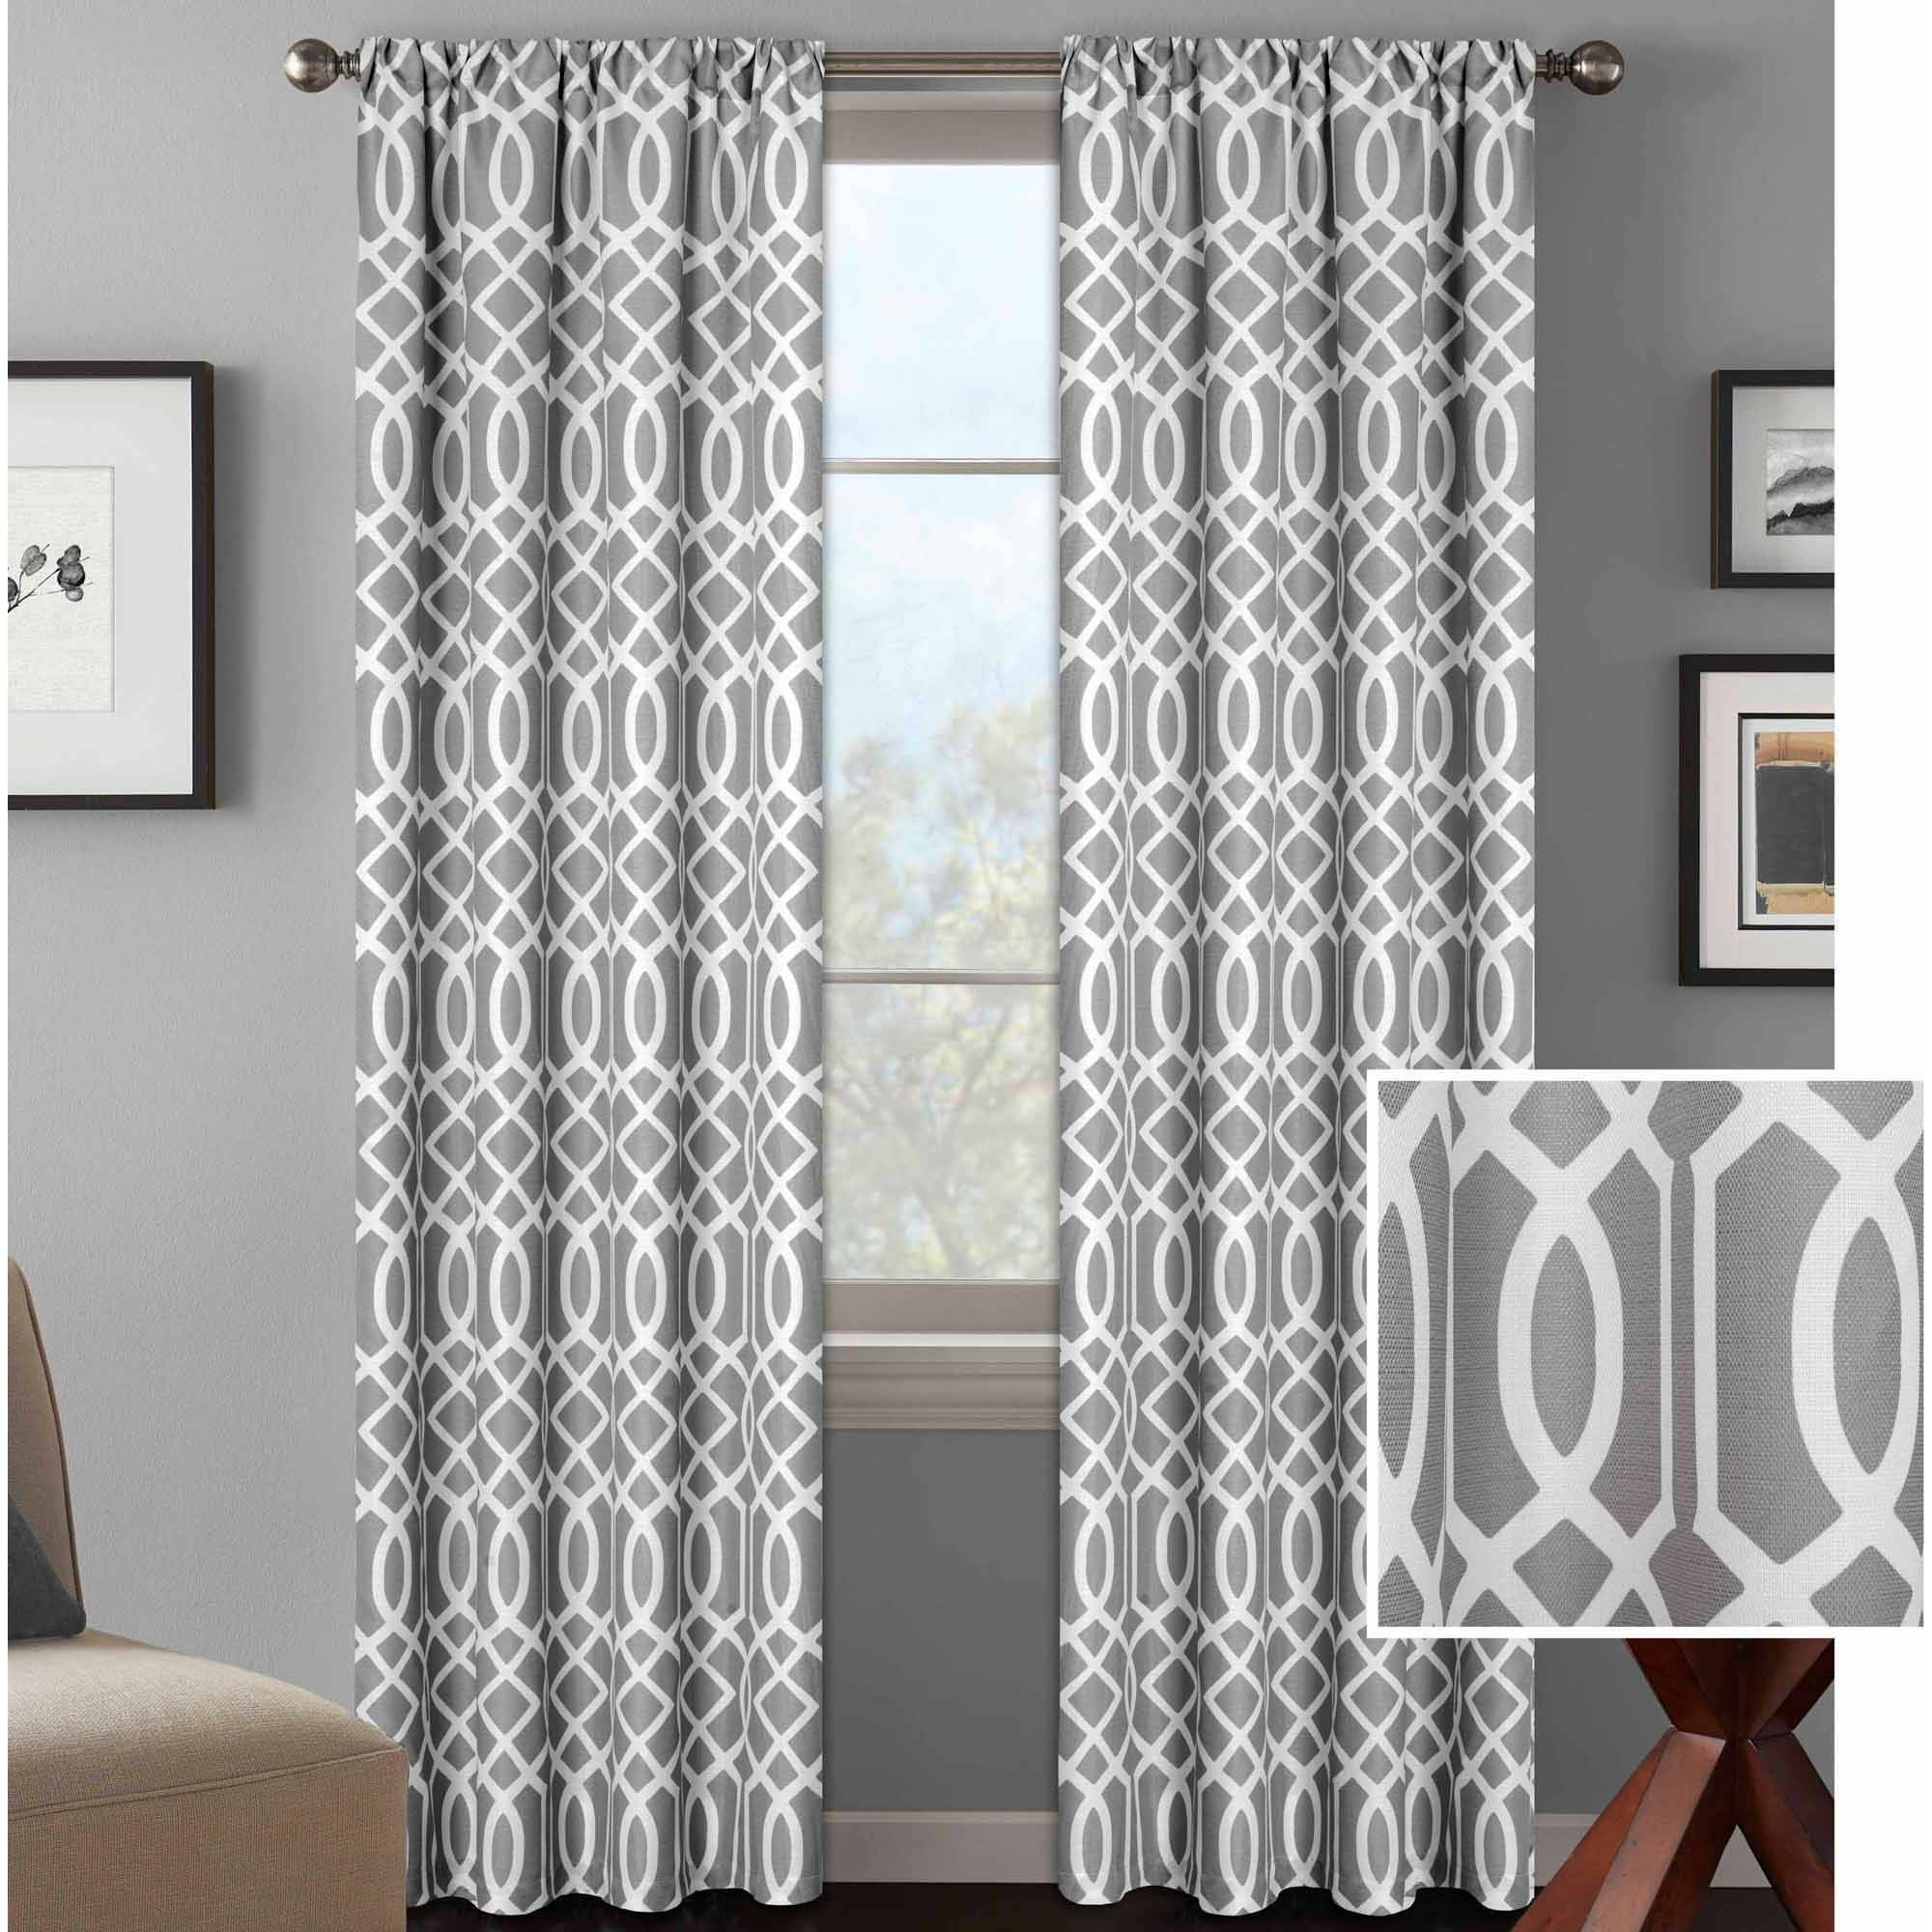 Curtains For Sale At Walmart Mainstays Sailcloth Rod Pocket Curtain Panel Set Of 2